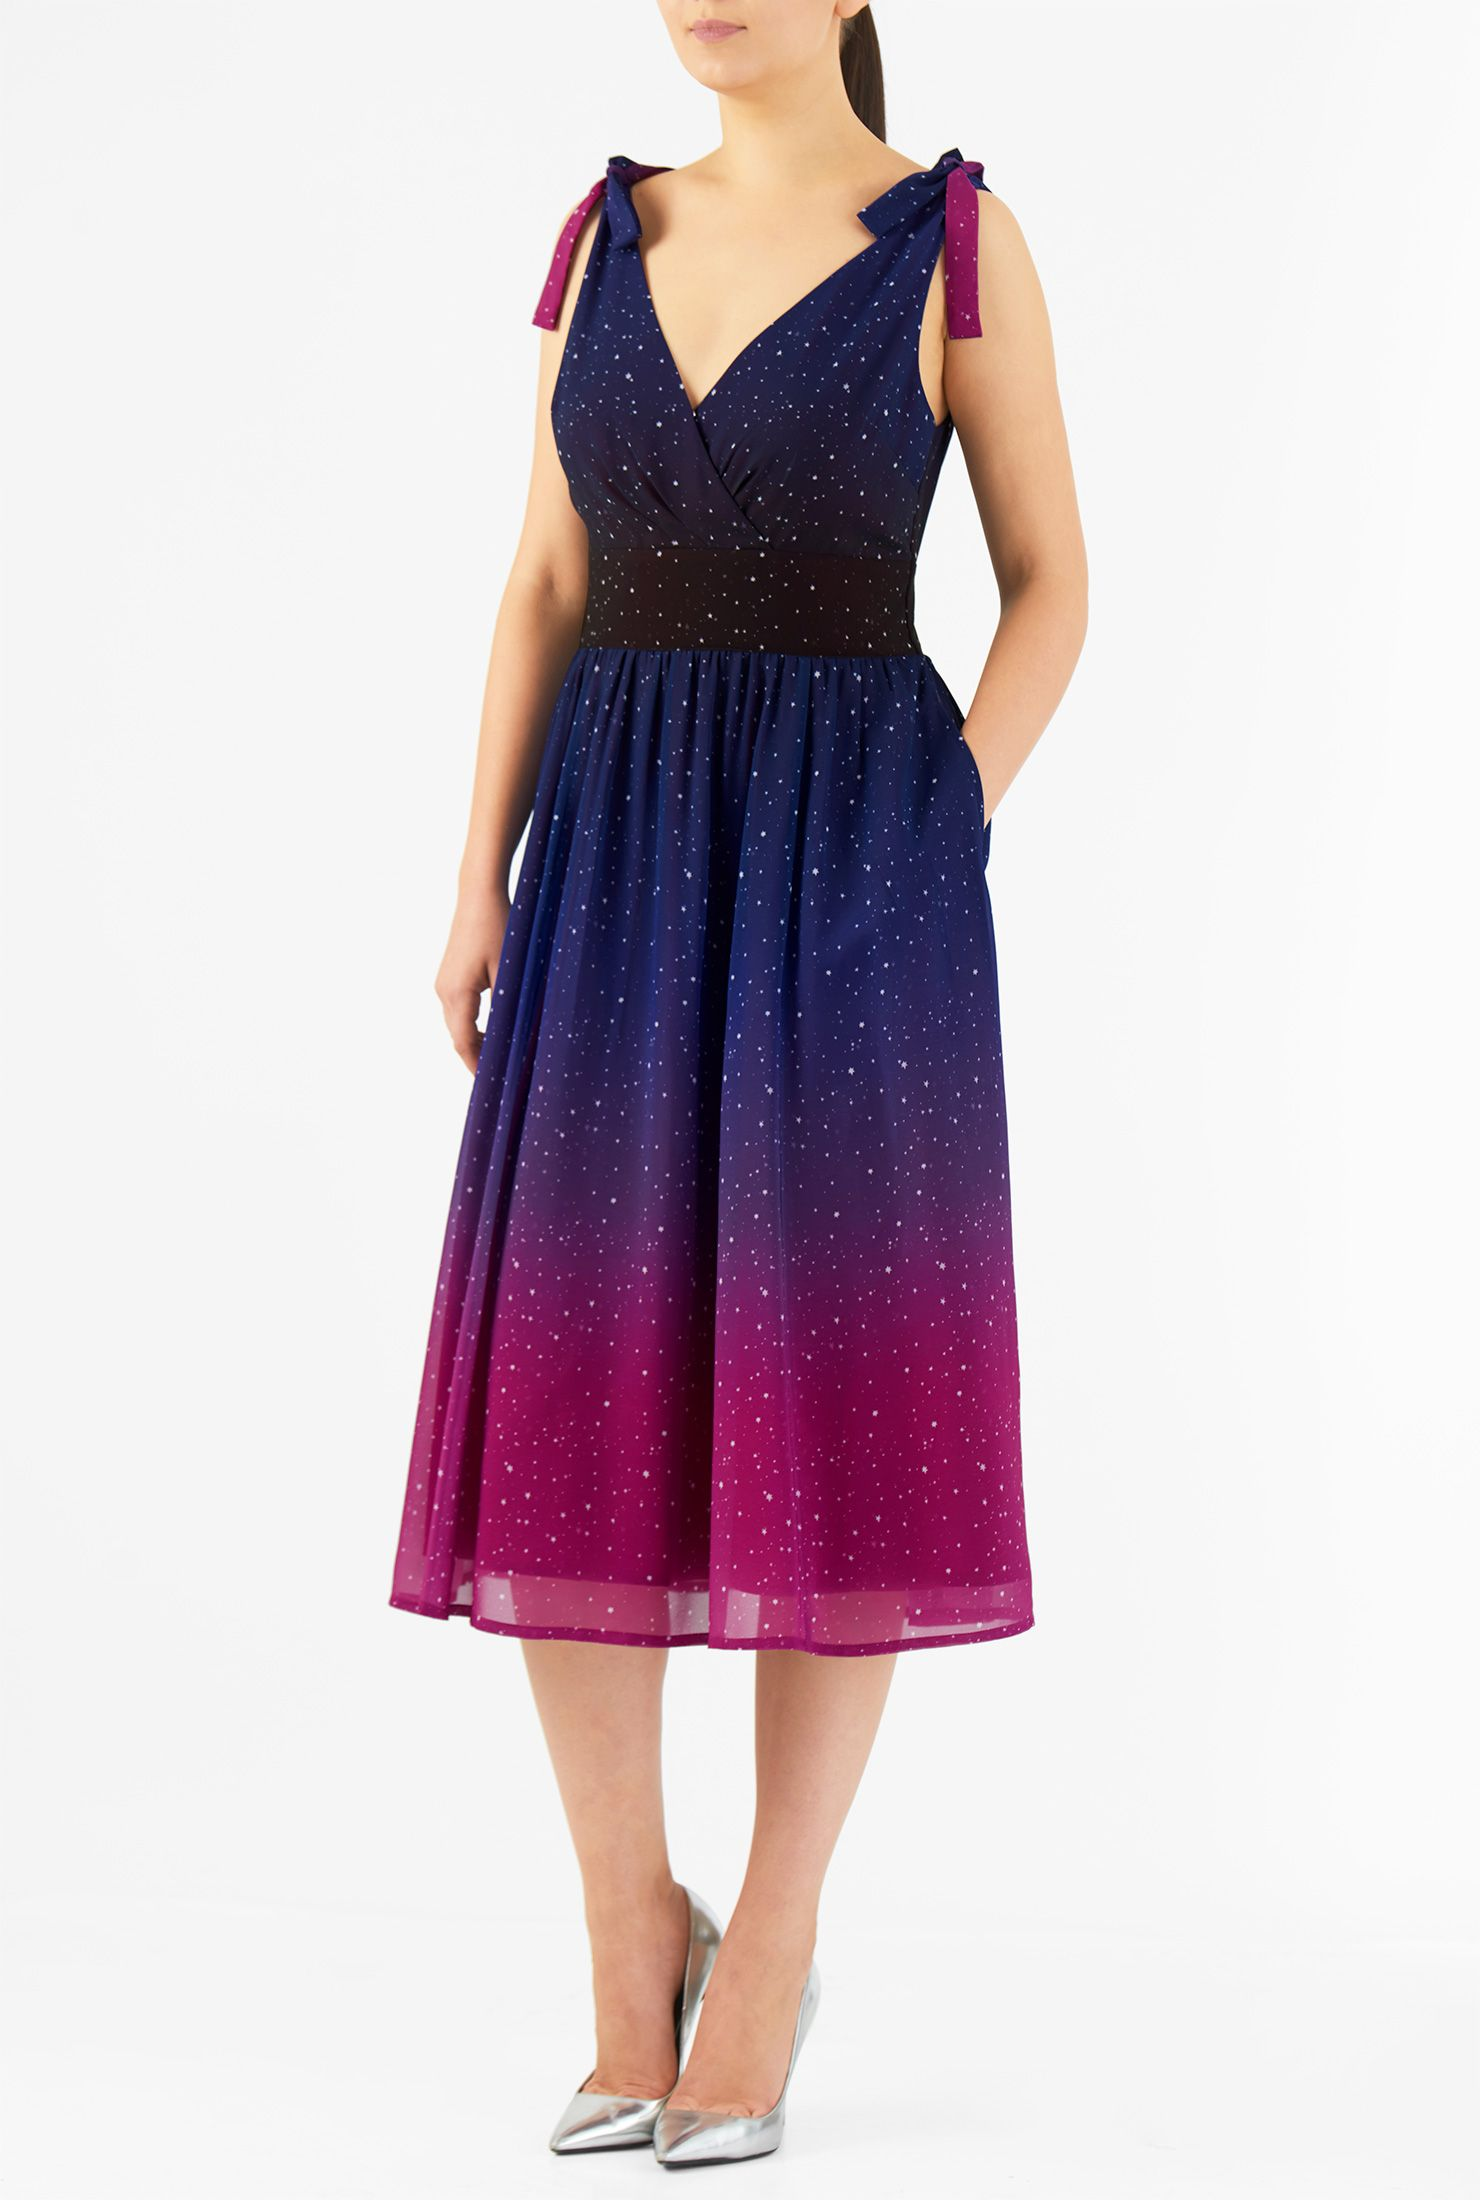 Ombre star print georgette shoulder ties dress